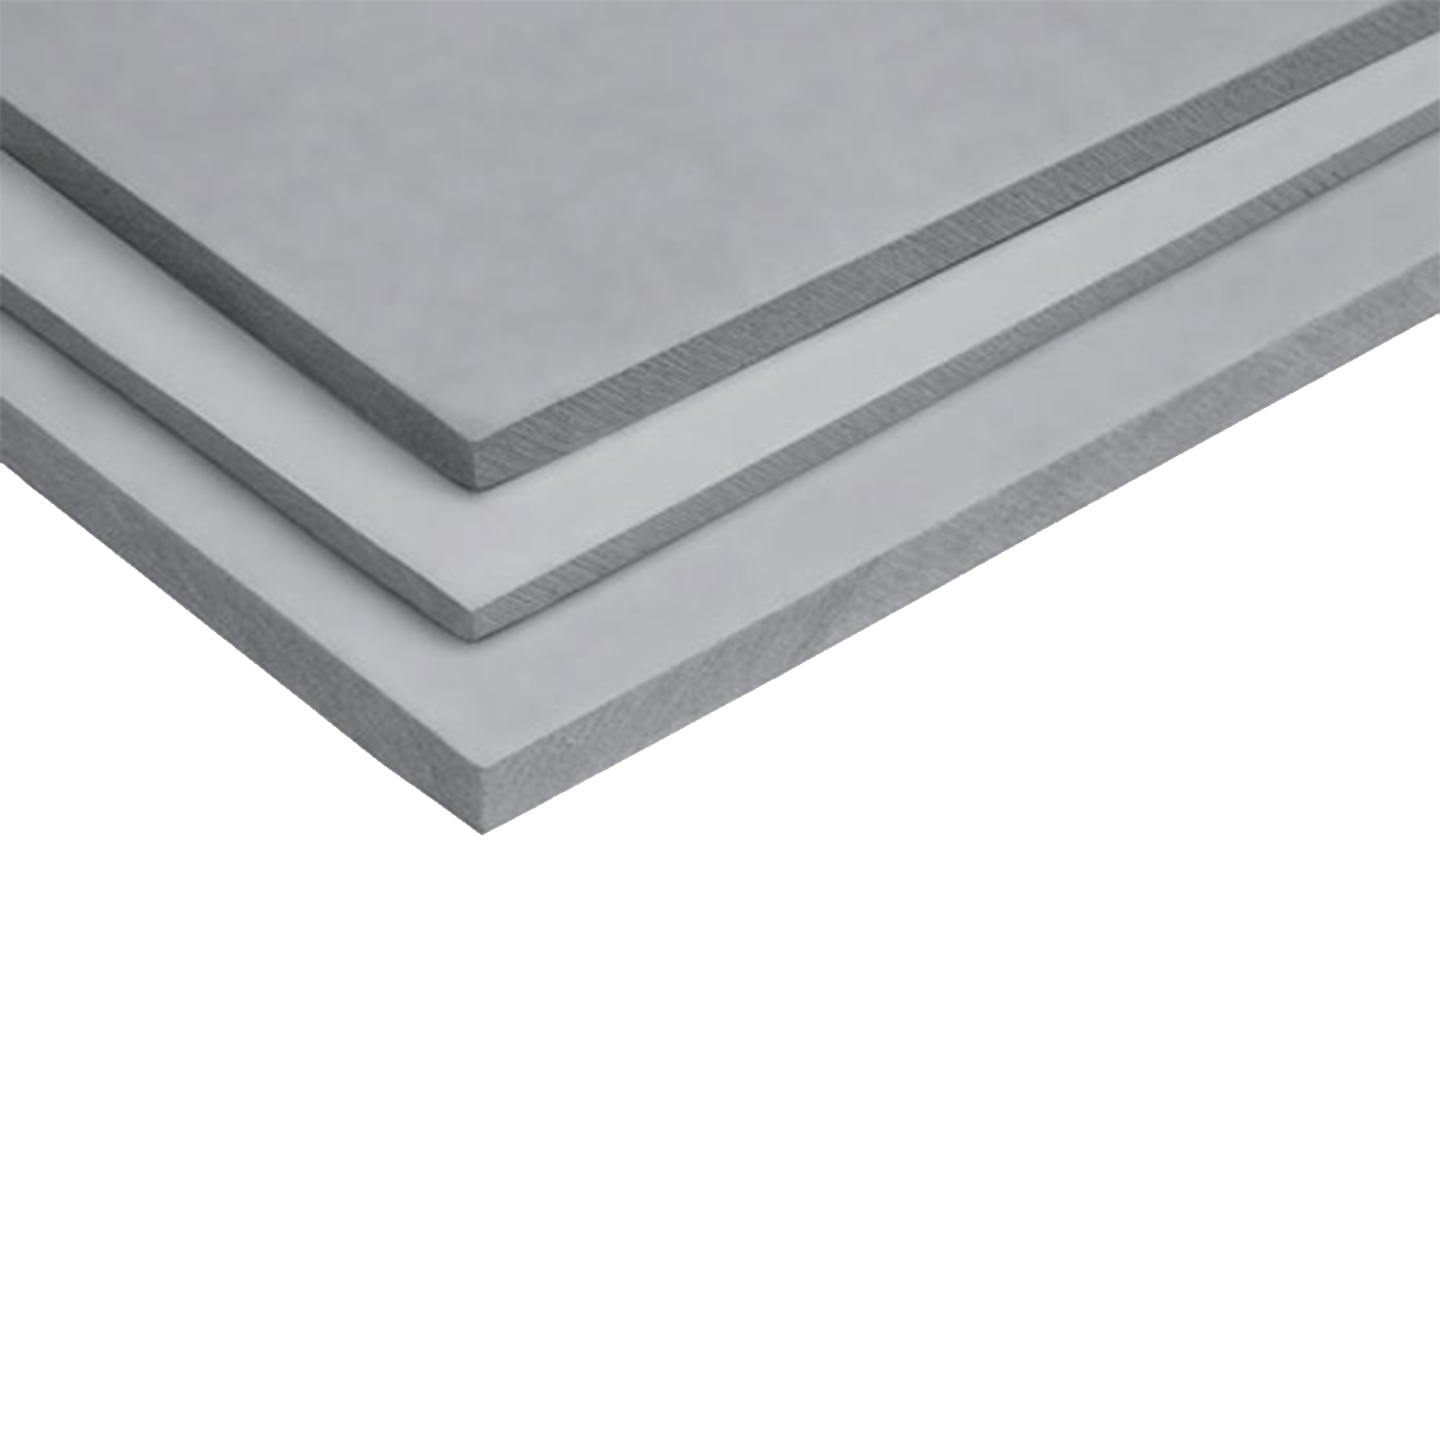 Cement boards prices